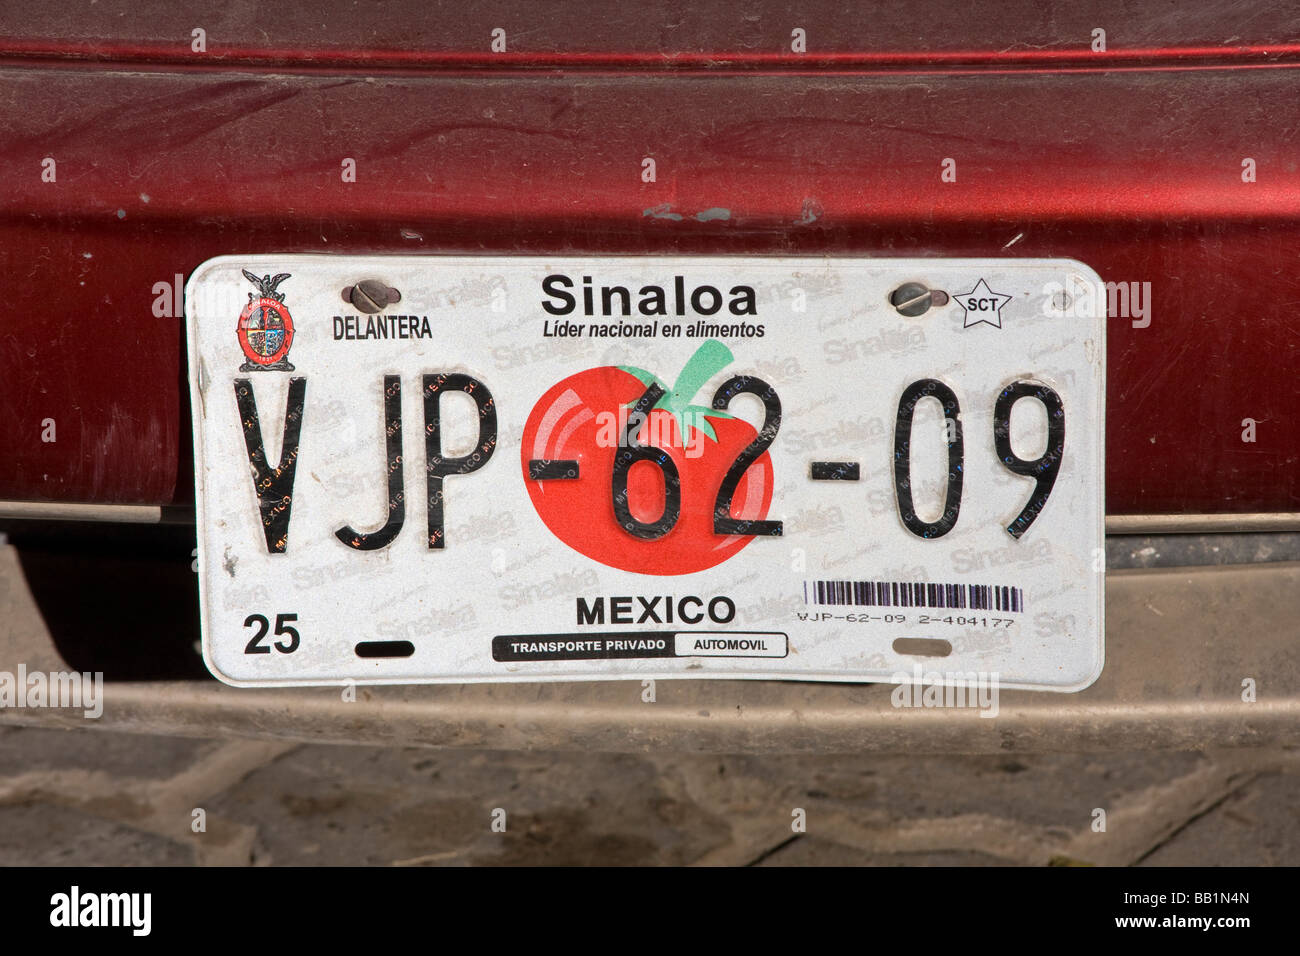 Car licence tag for Sinaloa state Mexico - Stock Image